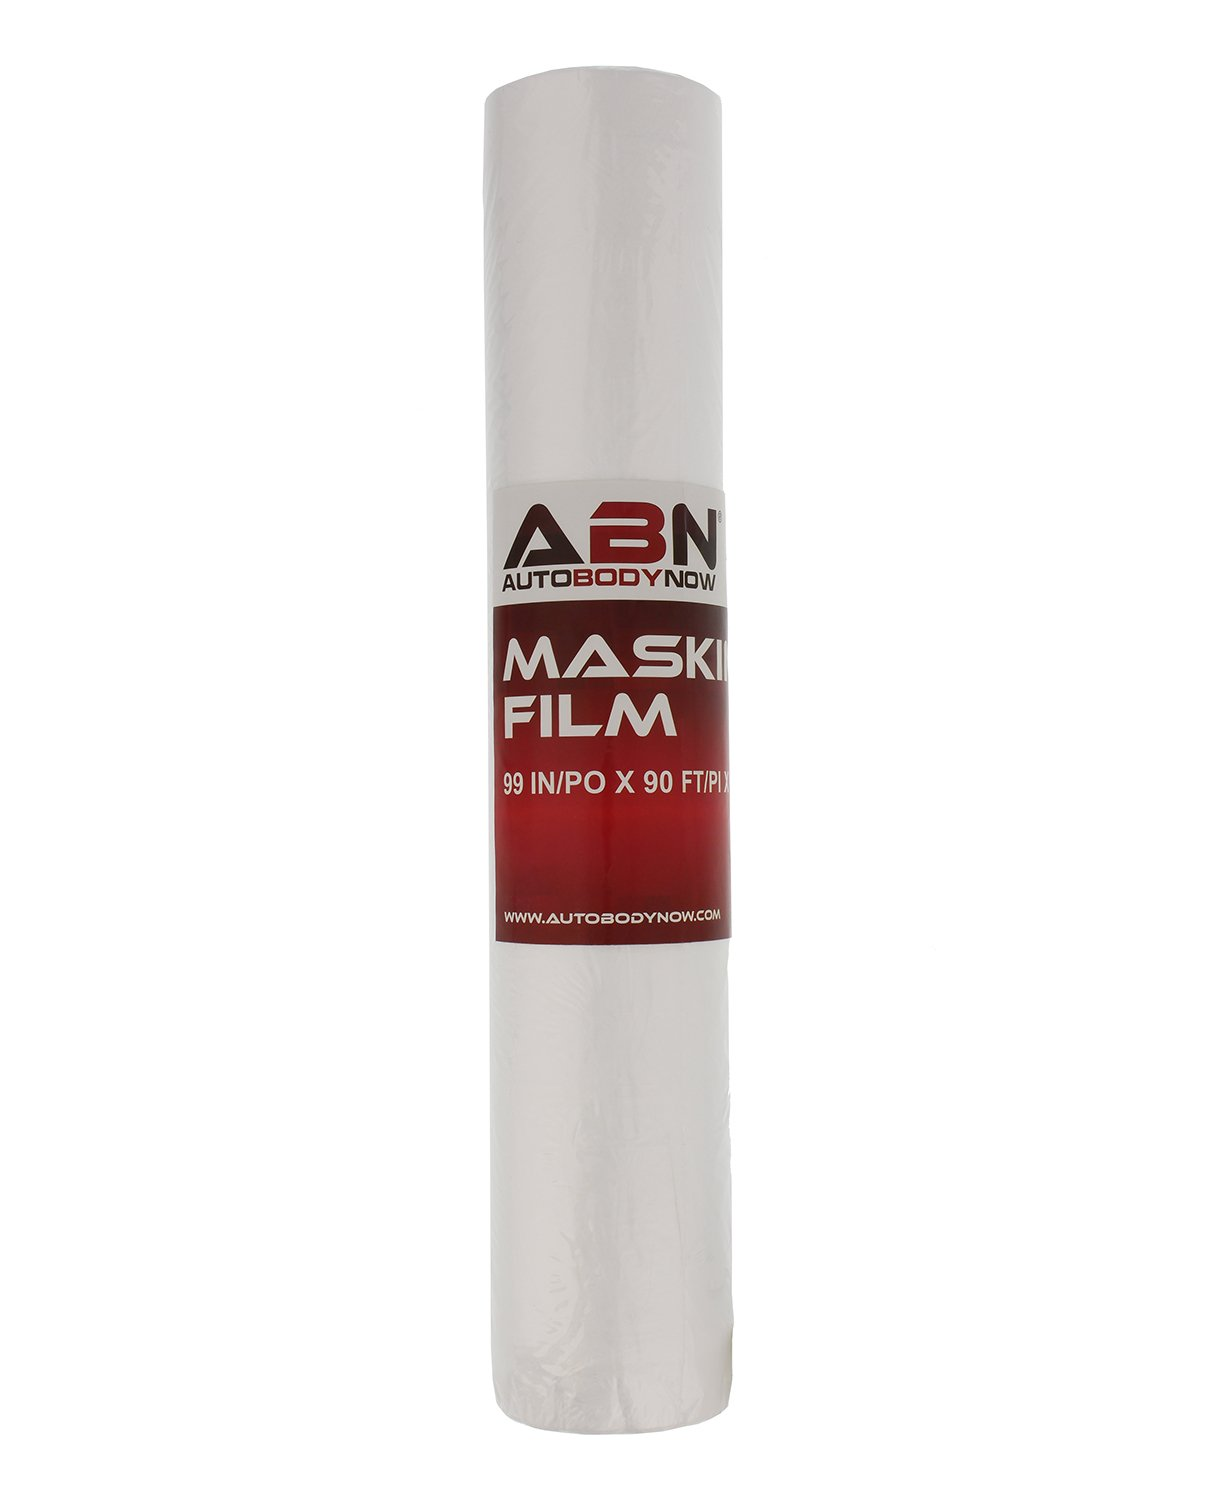 ABN Clear Plastic Sheeting, 99 in/po x 90 ft/pi x 0.35 Mil – Paint Overspray Transparent Protective Masking Film Roll by ABN